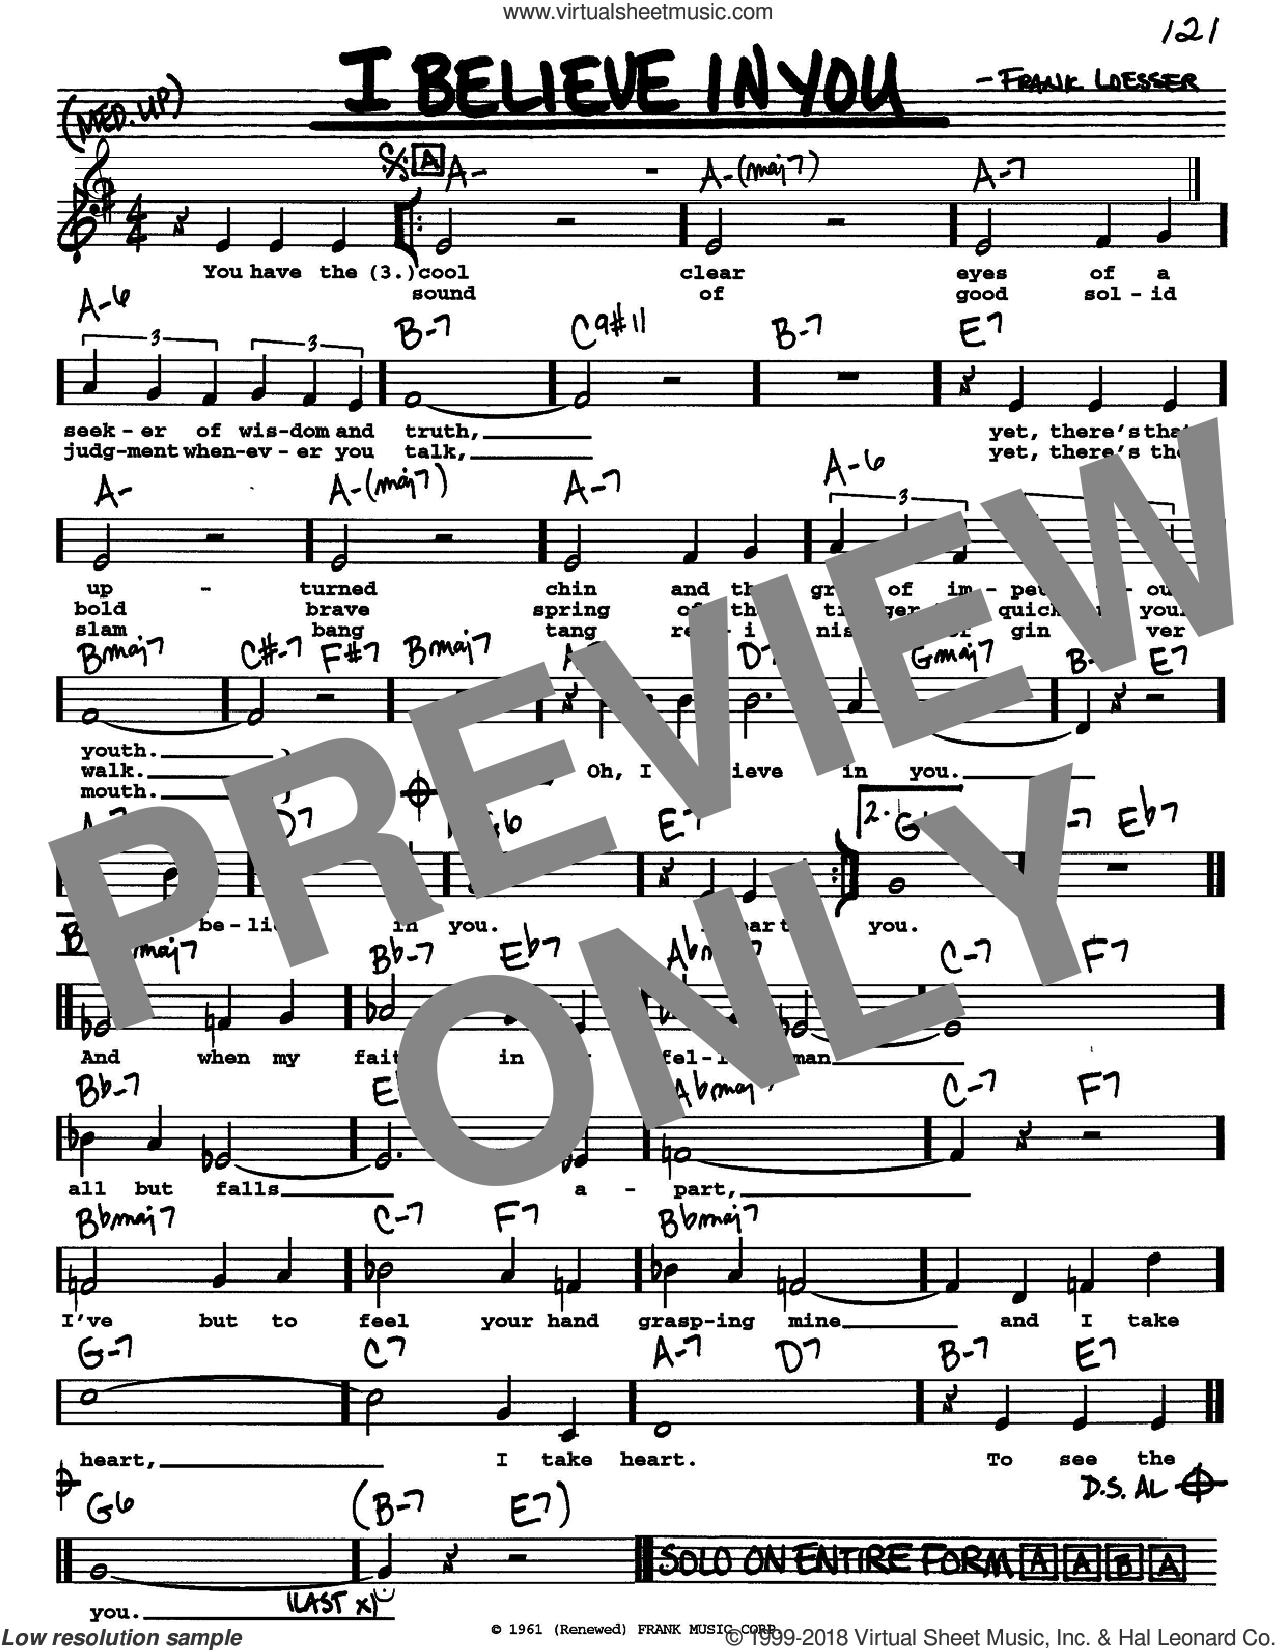 I Believe In You sheet music for voice and other instruments  by Frank Loesser, intermediate skill level